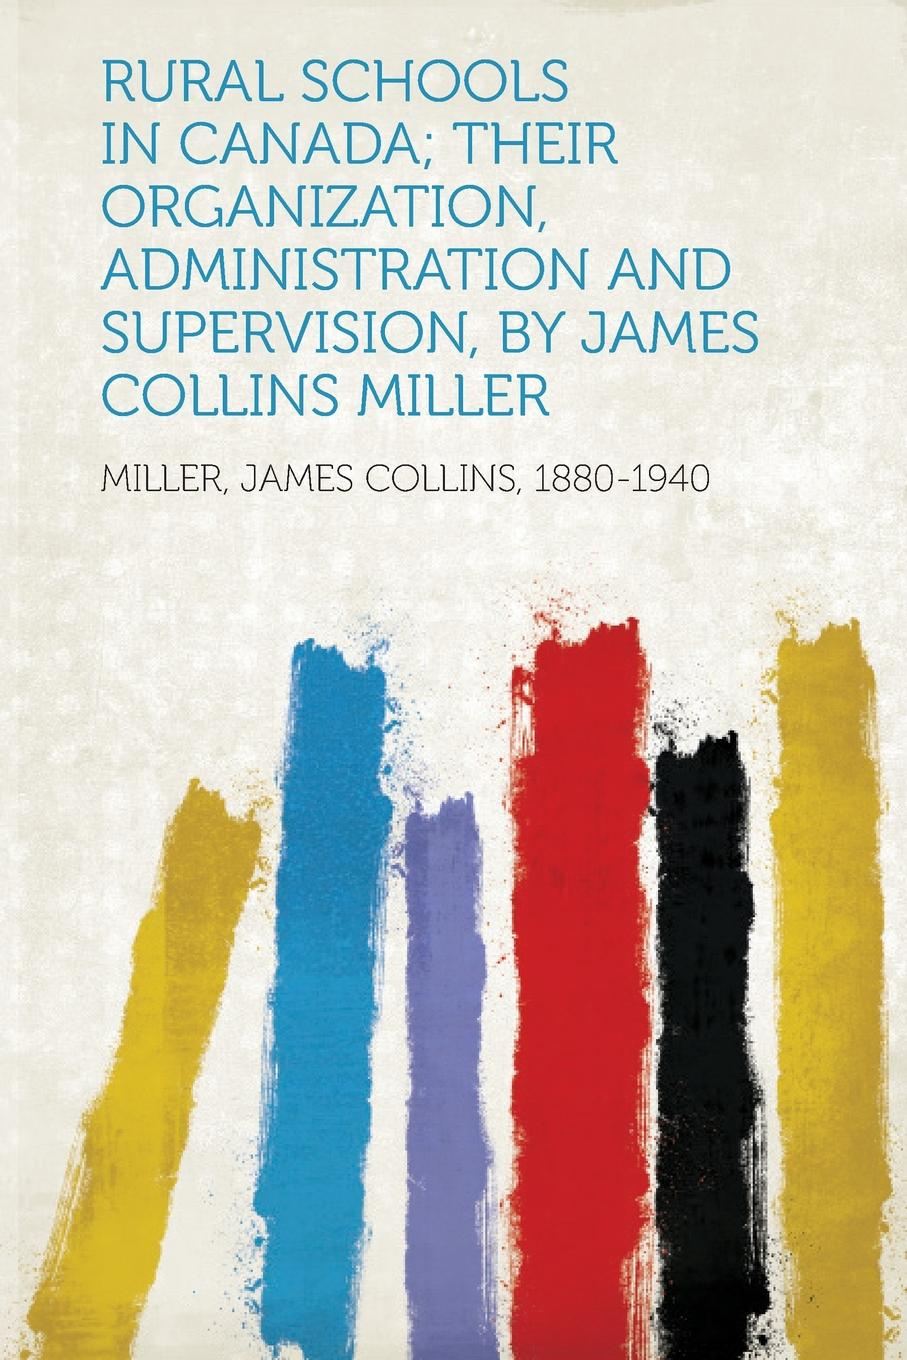 Miller James Collins 1880-1940 Rural Schools in Canada; Their Organization, Administration and Supervision, by James Collins Miller